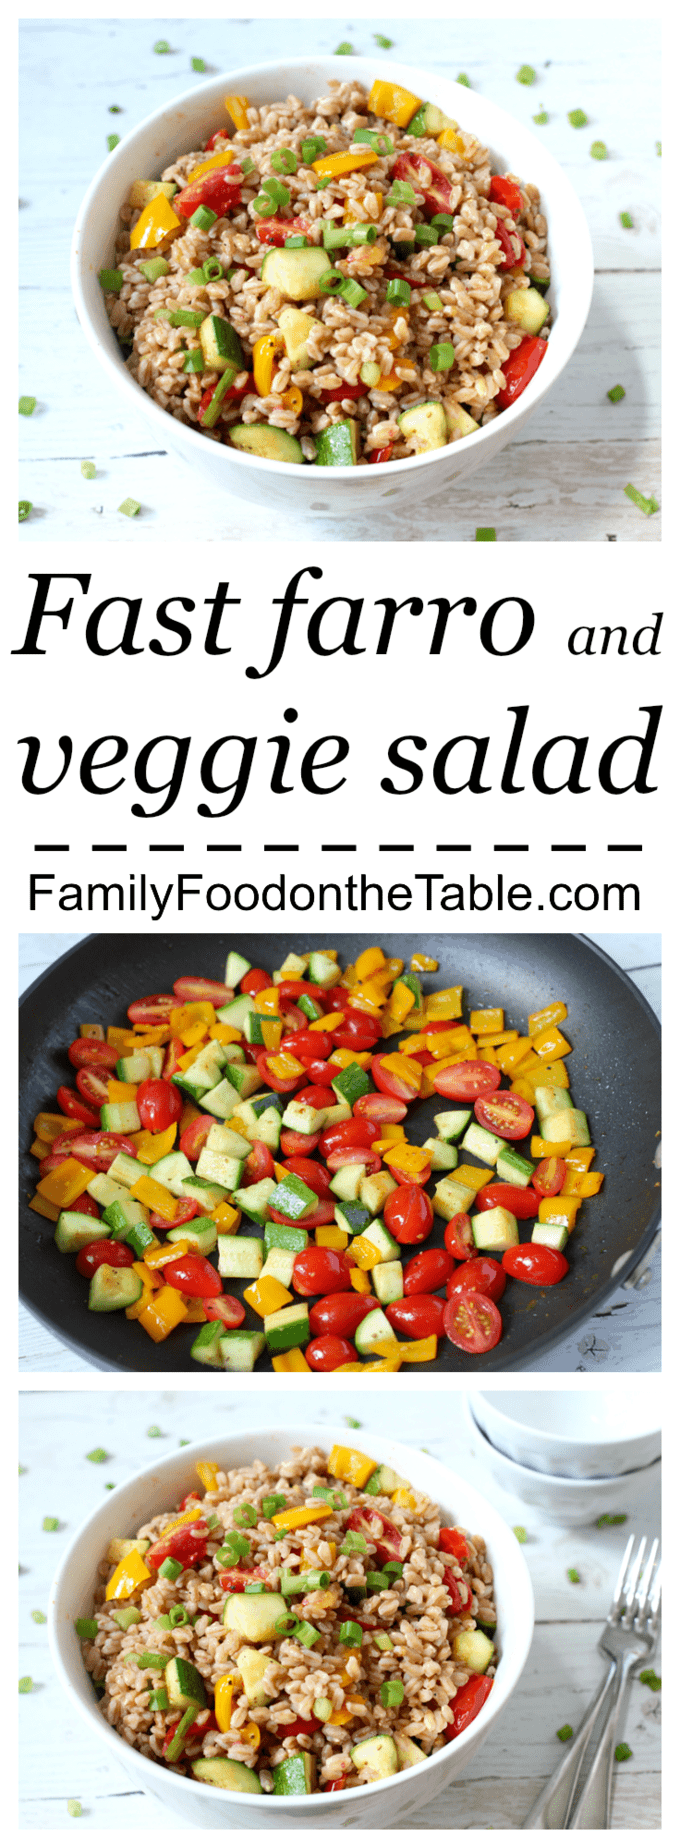 A quick, fun, healthy side dish of farro and mixed veggies!